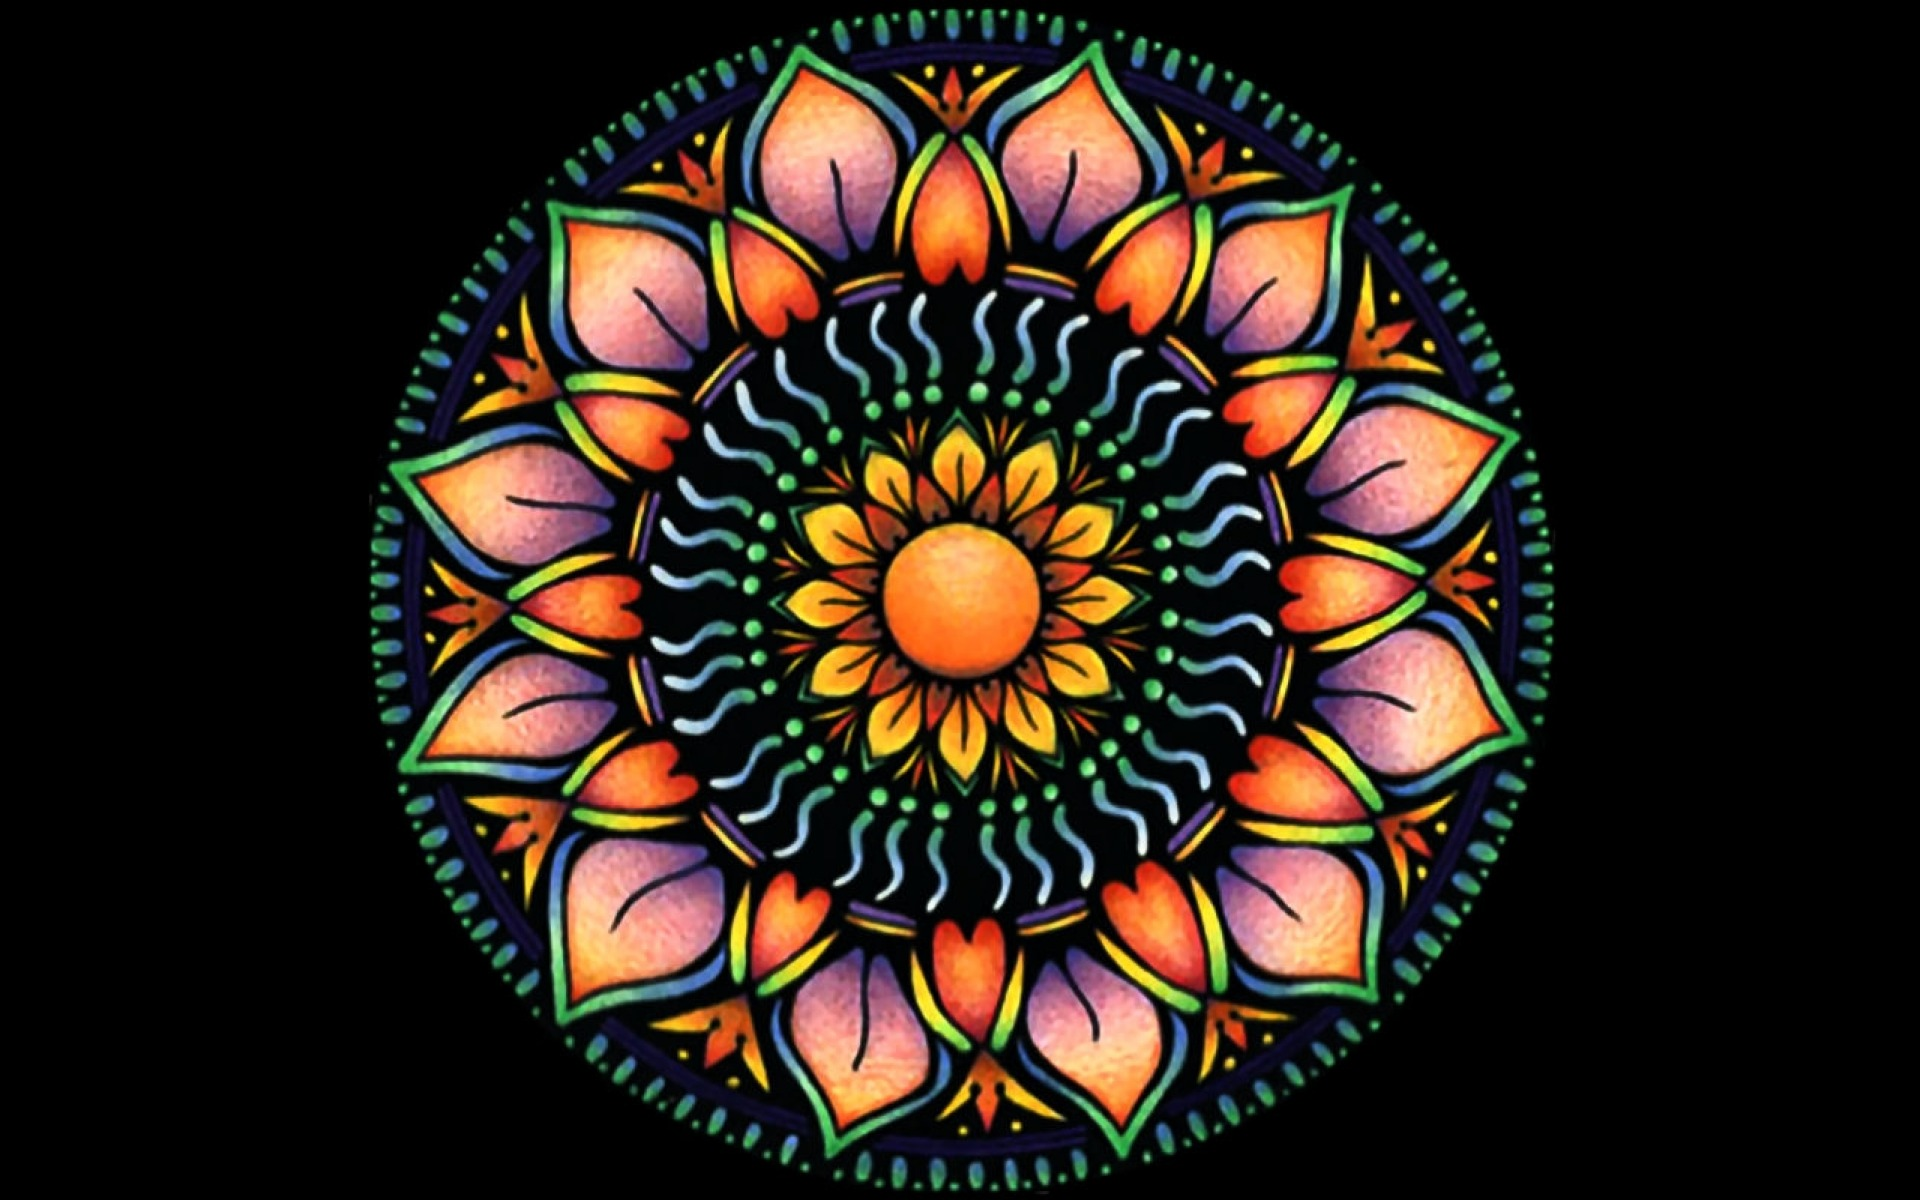 Orange Mandala Flower wallpapers Orange Mandala Flower stock photos